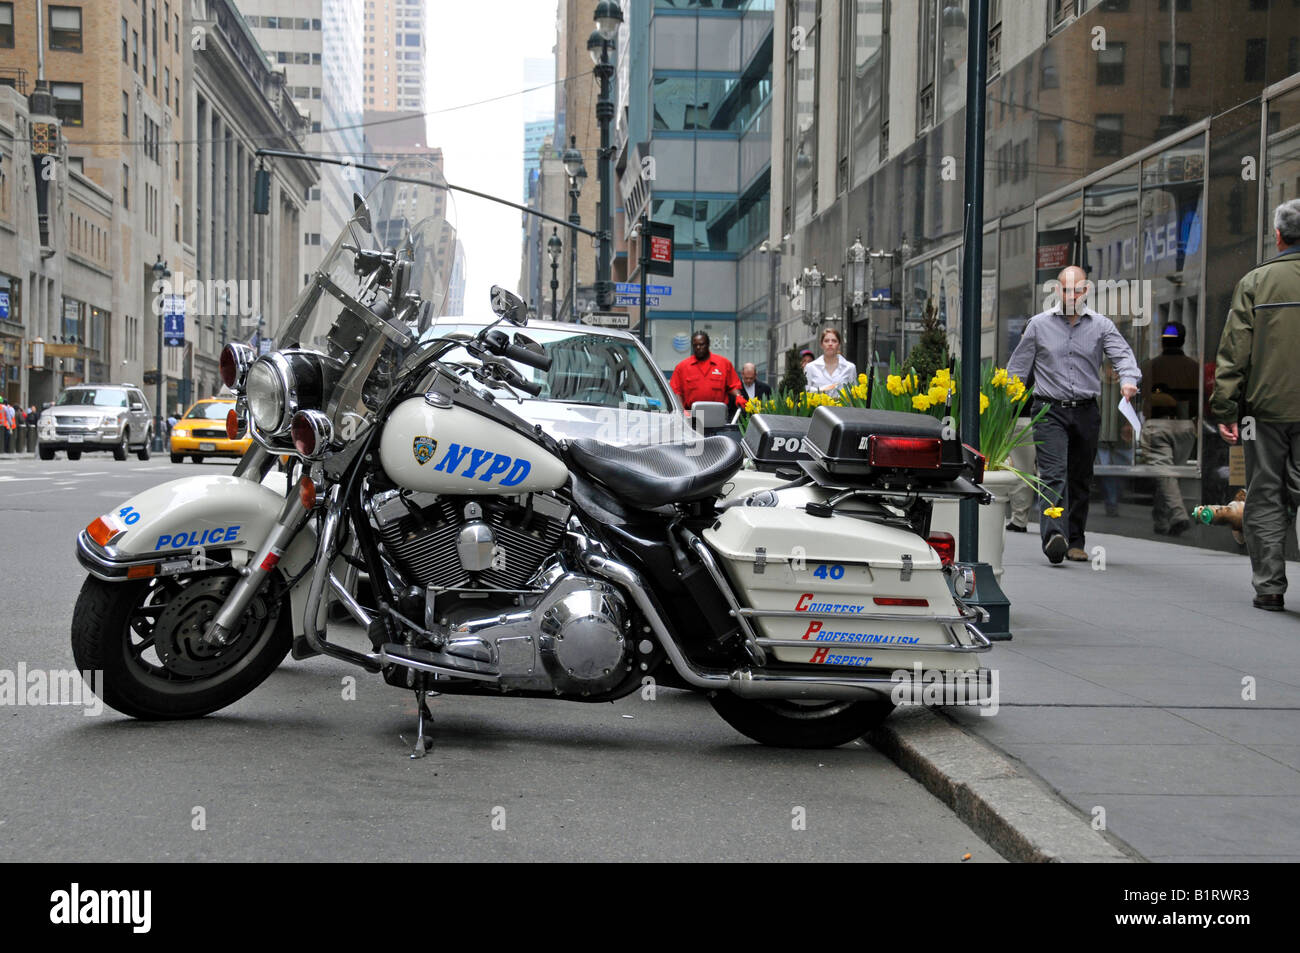 harley davidson police motorcycles of the new york police